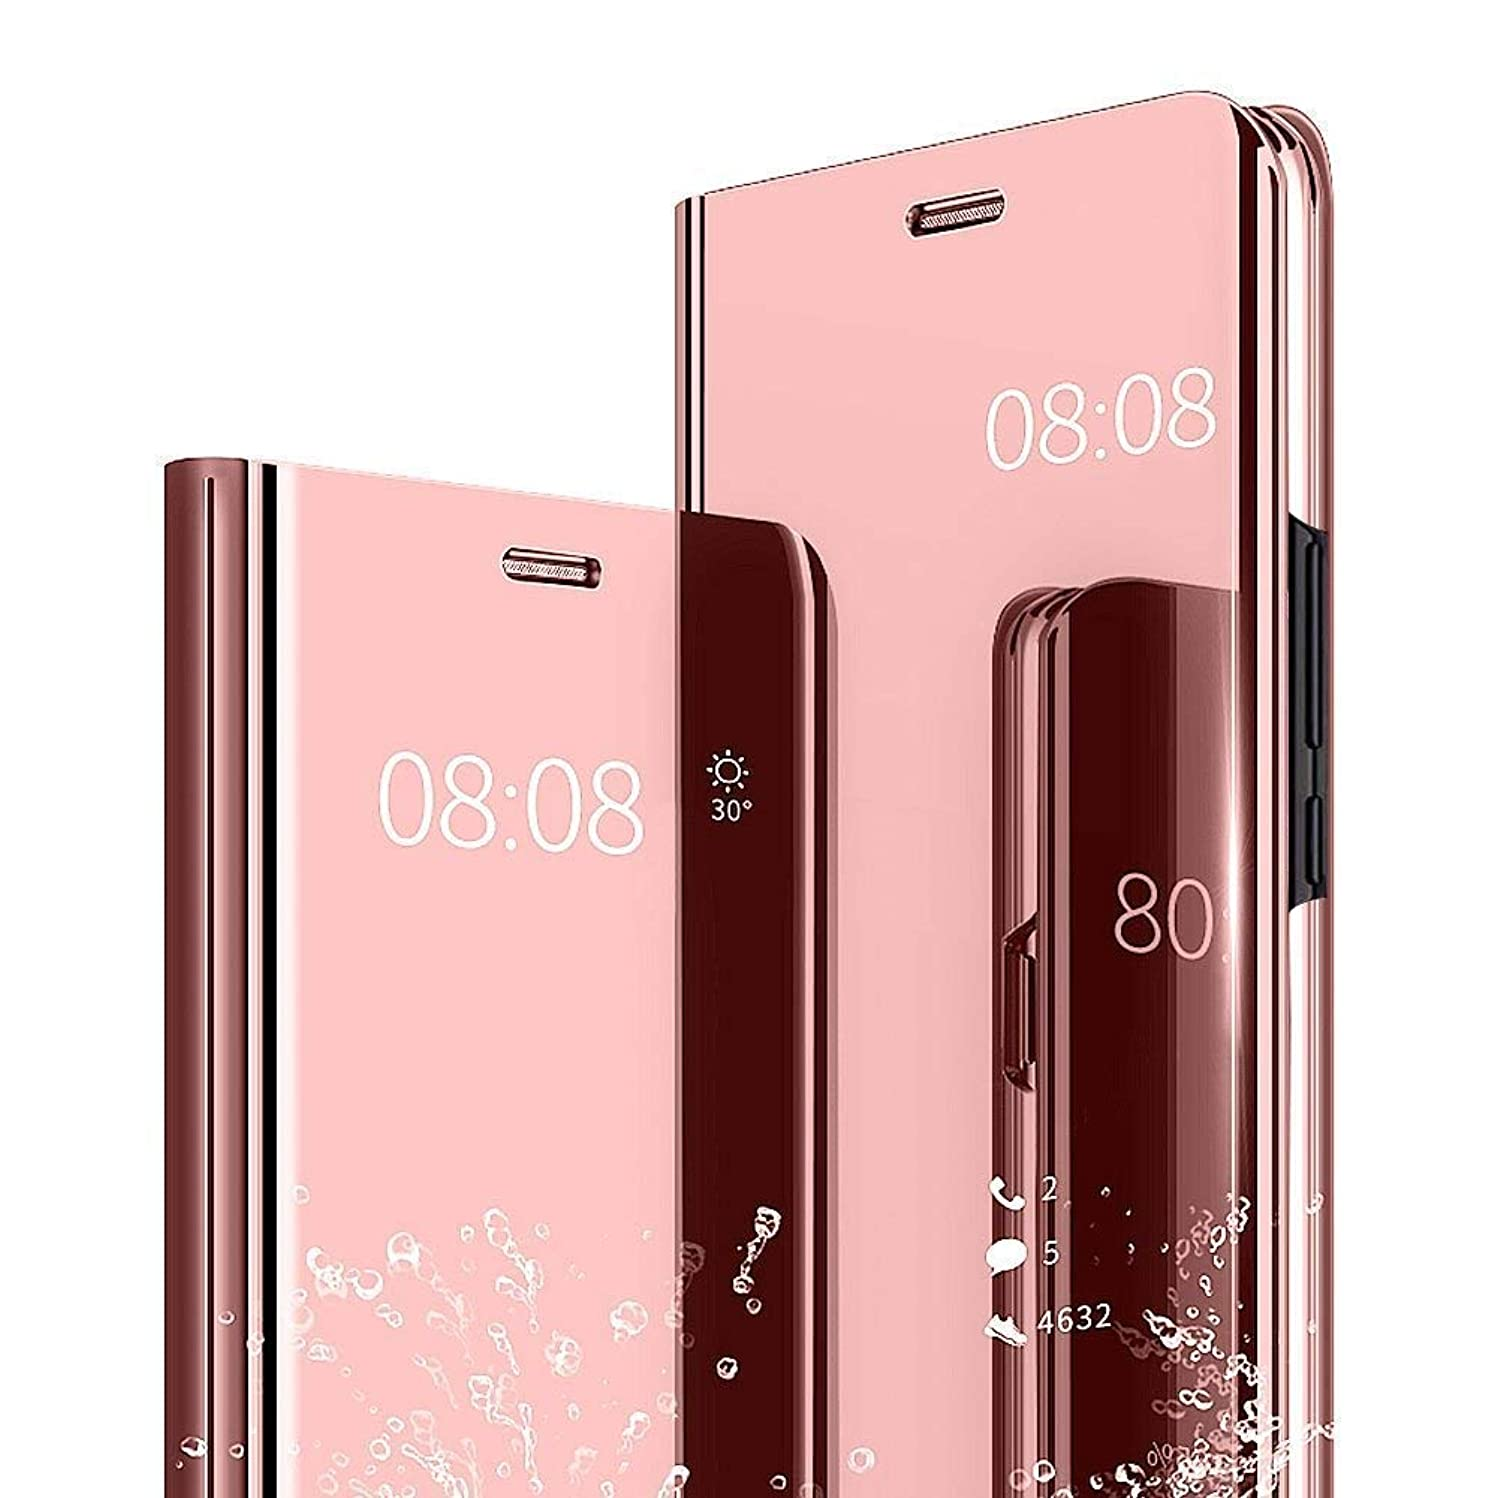 Galaxy A7 2018 Case, Ankoe Luxury Translucent View Mirror Flip Electroplate Plating Stand Shockproof 360 Full Body Protective Hard PC Cover for Samsung A7 2018 SM-A750 (Rose Gold)